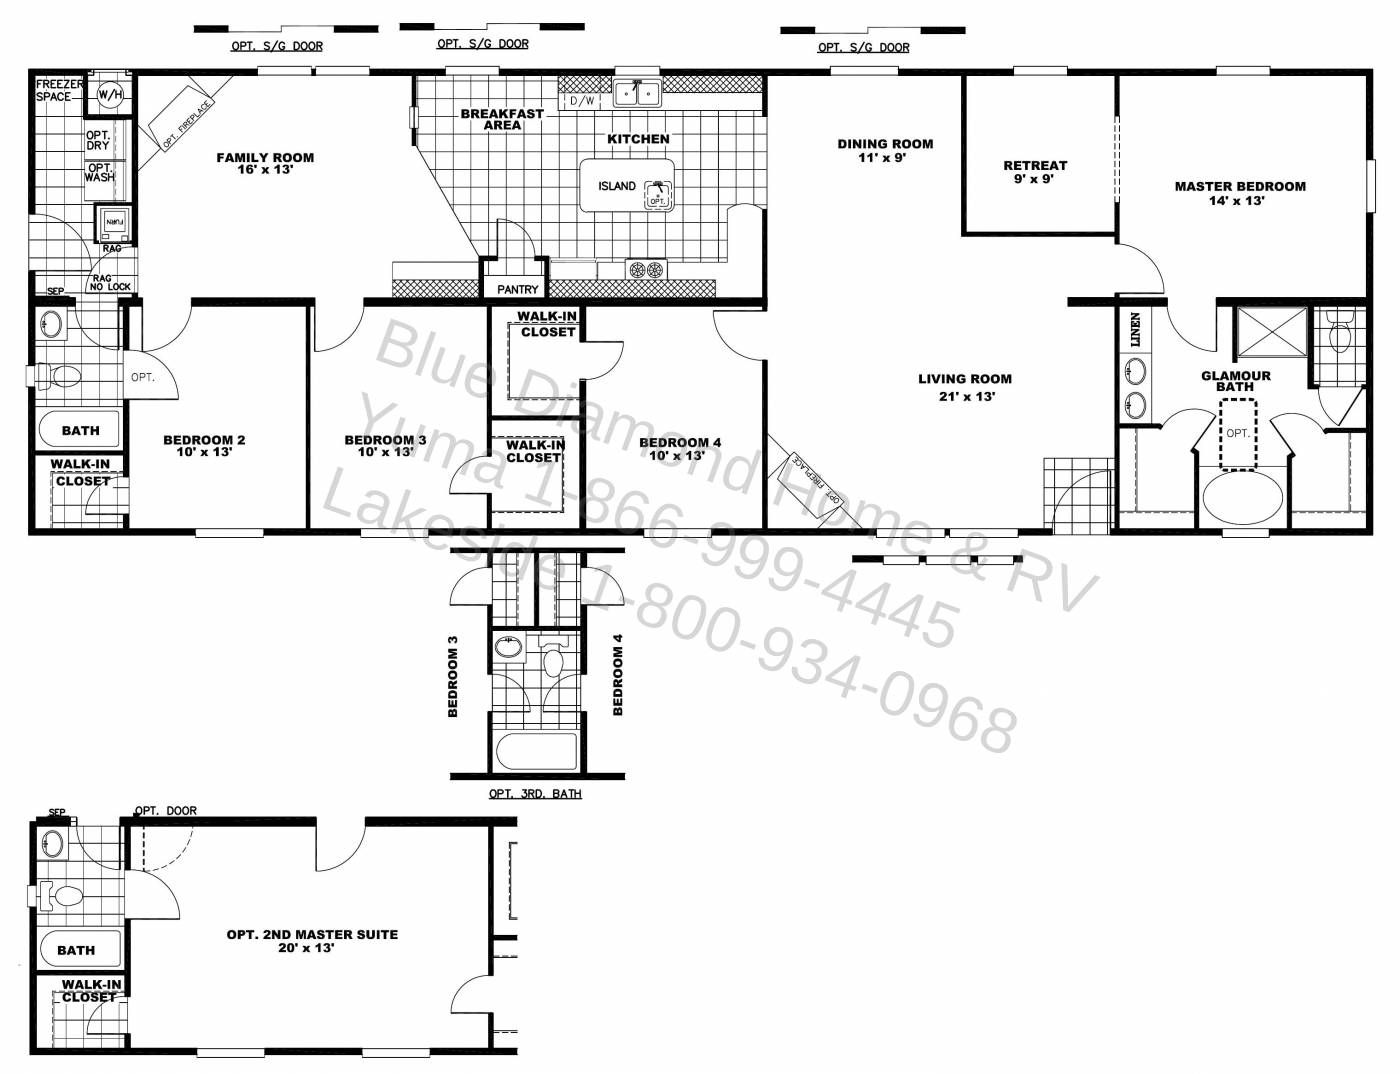 The bedroom house plans master bedrooms above is used allow decoration of your home interior to be more mesmerizing description from limbago also rh ar pinterest